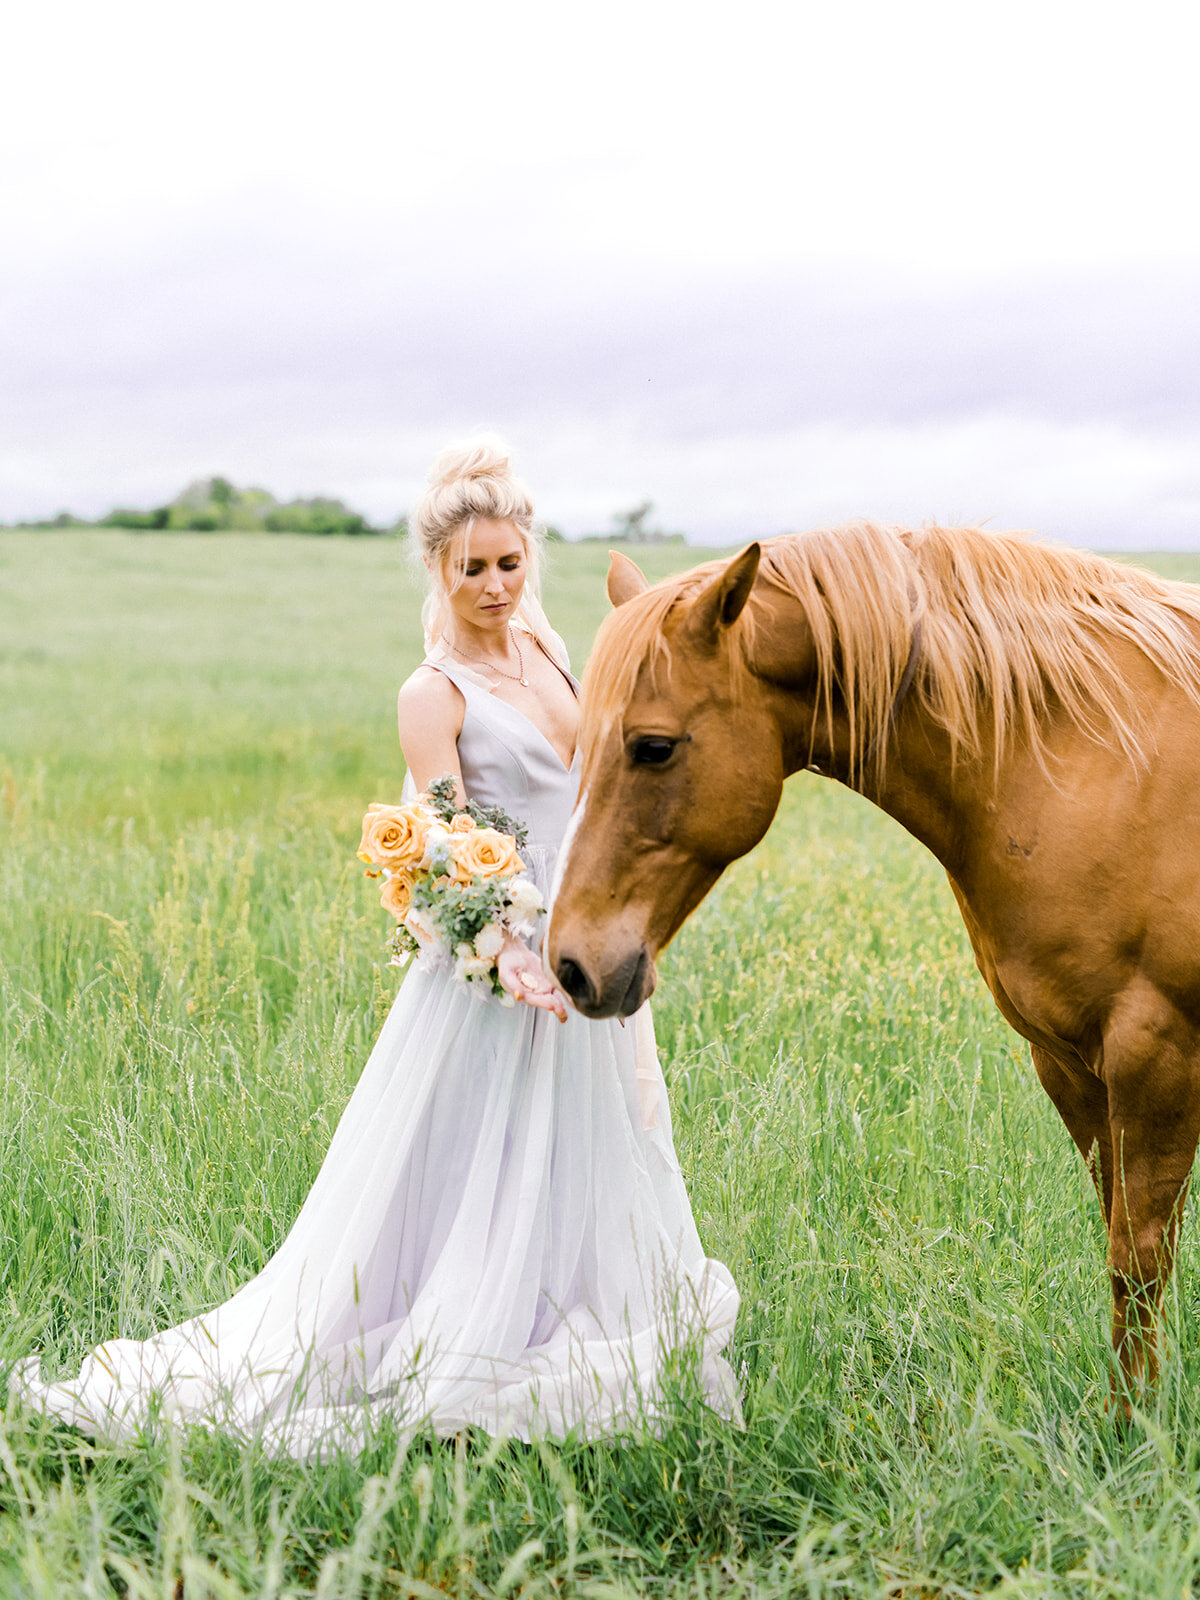 Bridal Portrait With Horse and Blue Dress